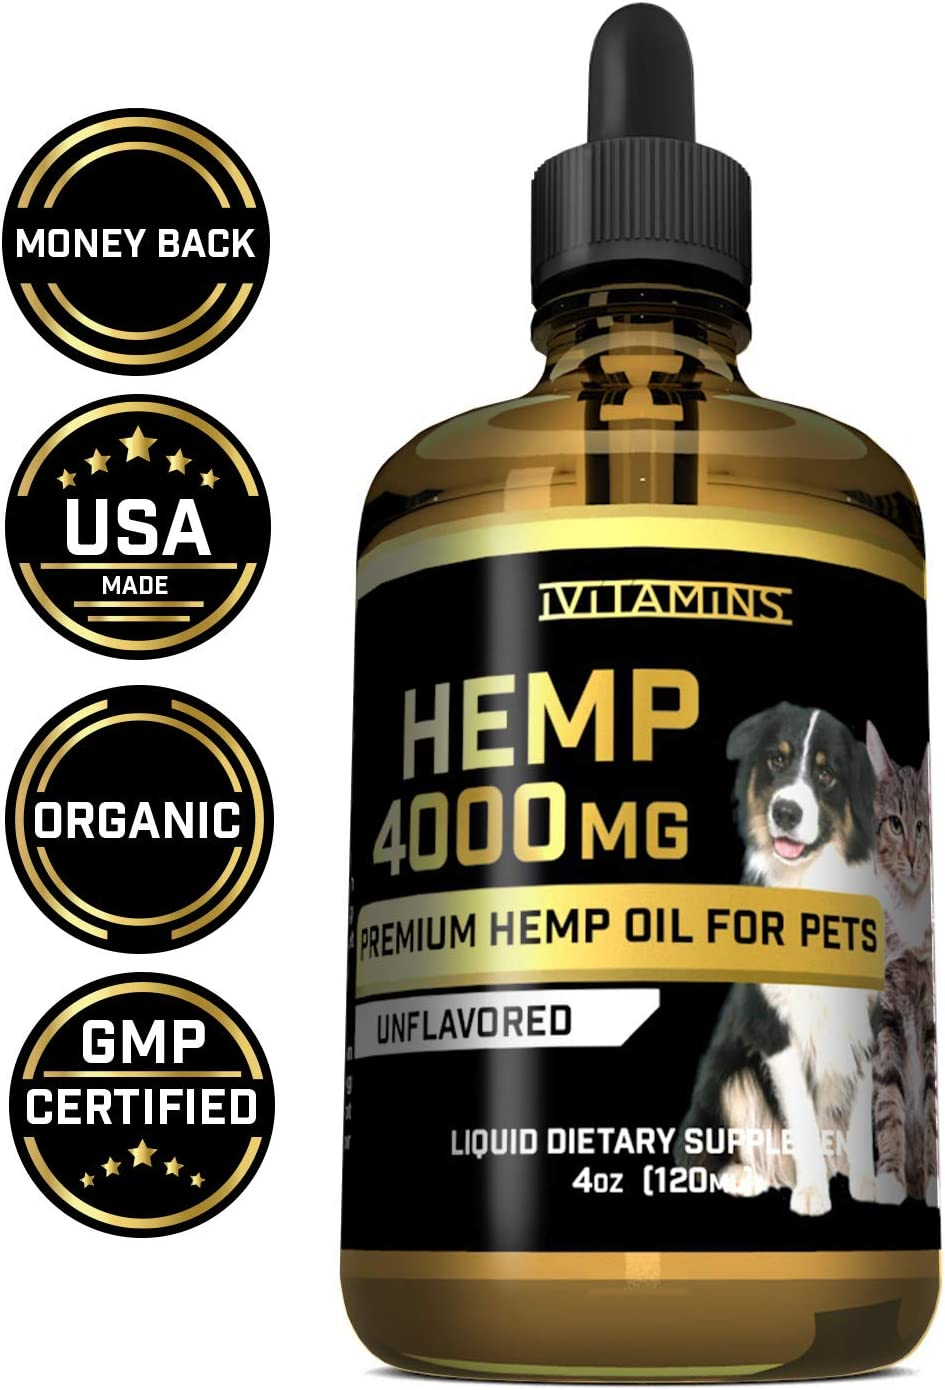 iVitamins Hemp Oil for Pets, Dogs, Cats : 4 fl oz : May Help with Separation Anxiety, Arthritis, Inflammation, Joints, Hips, and More : Hemp Seed Extract : Easily Apply to Treats